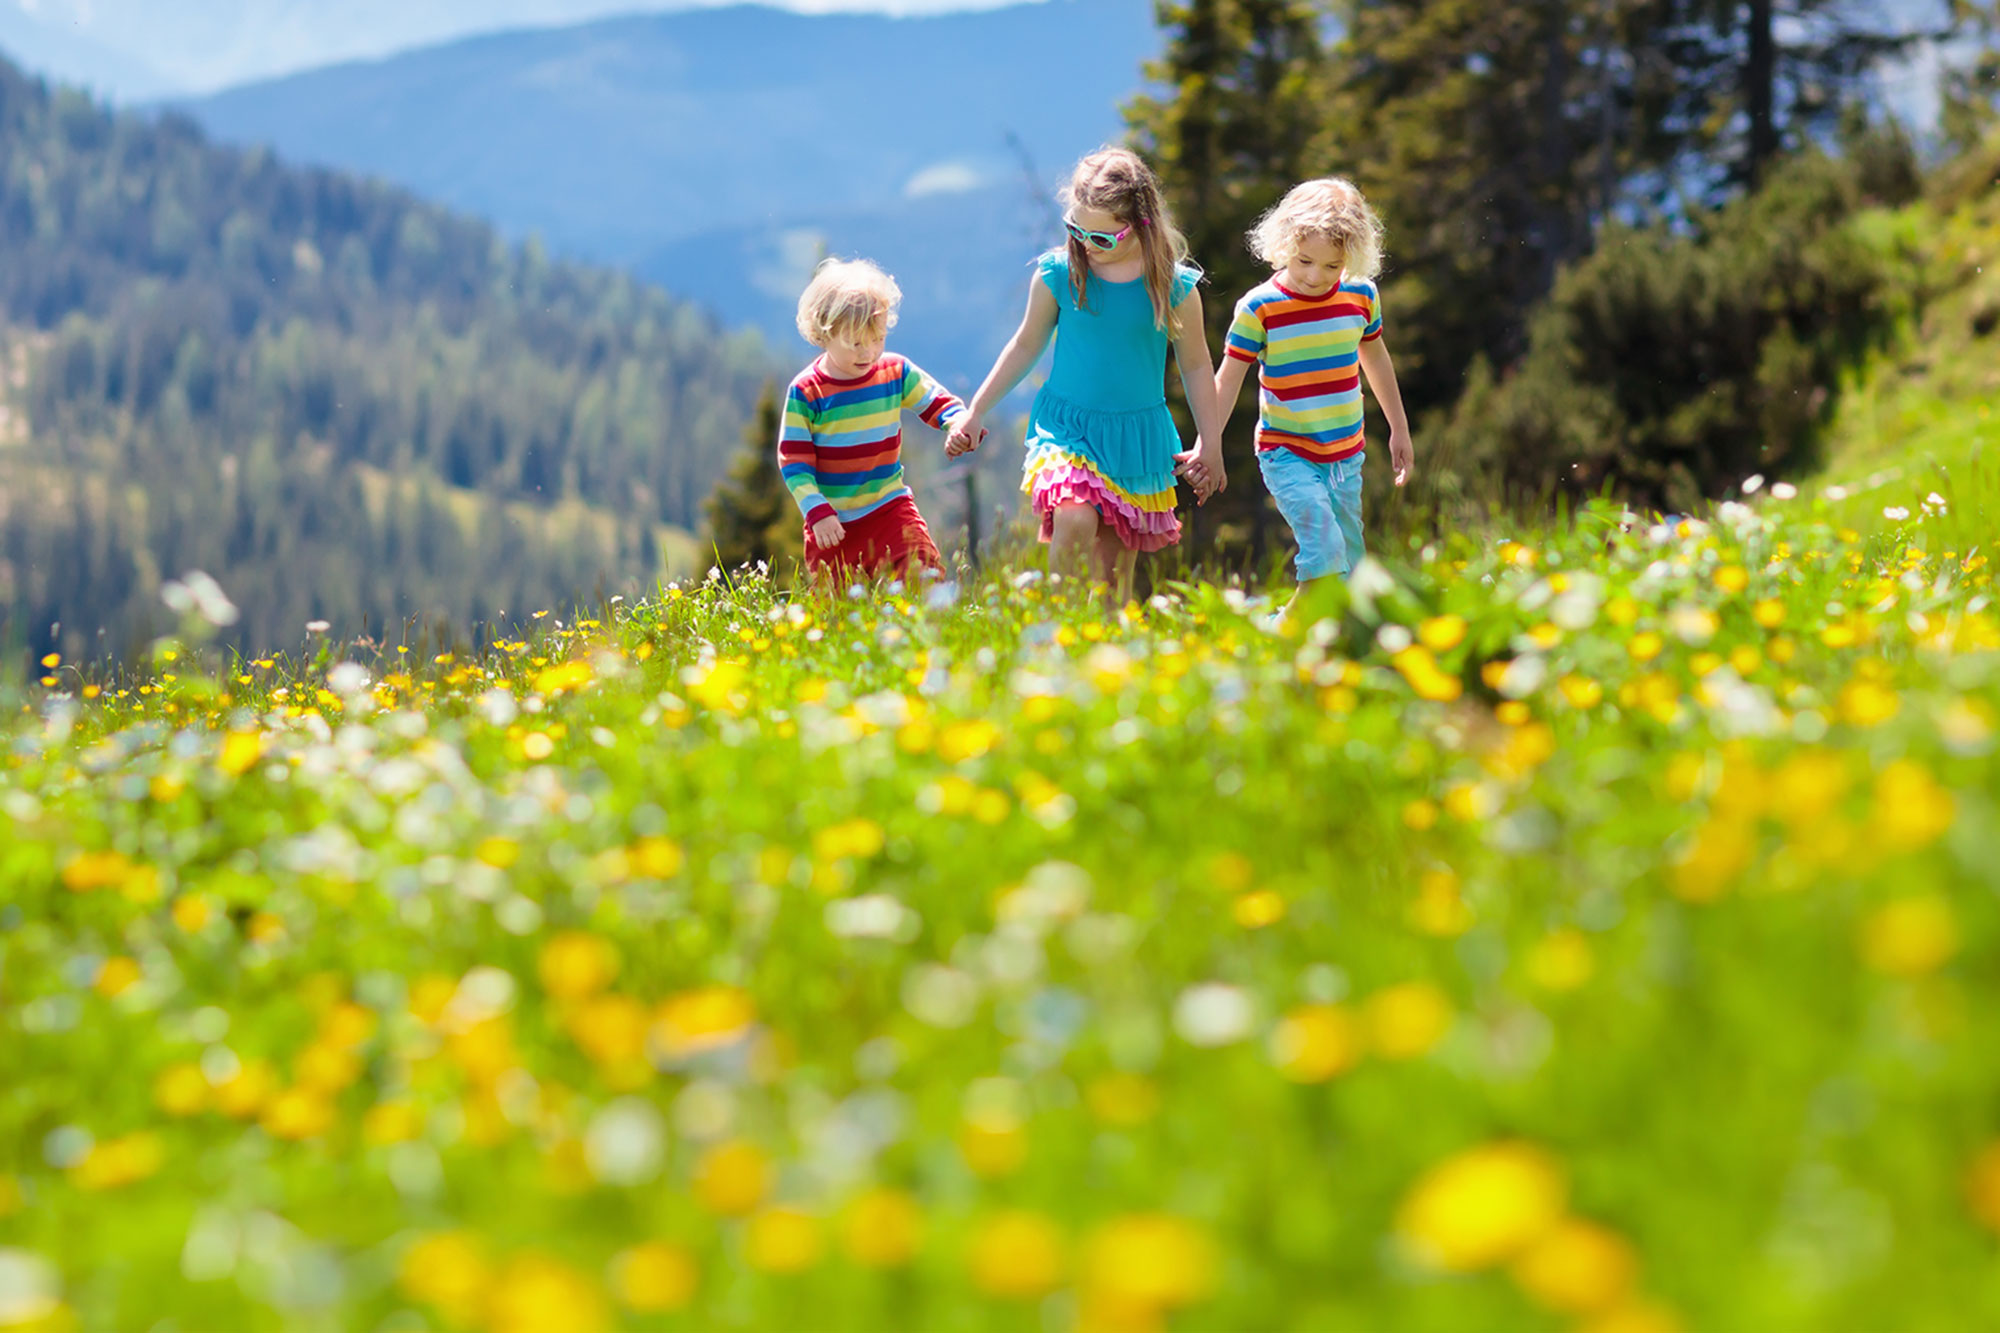 MOUNTAINS-FAMILY-JASPER-SPRING-SUMMER-THINGS-TO-DO-3